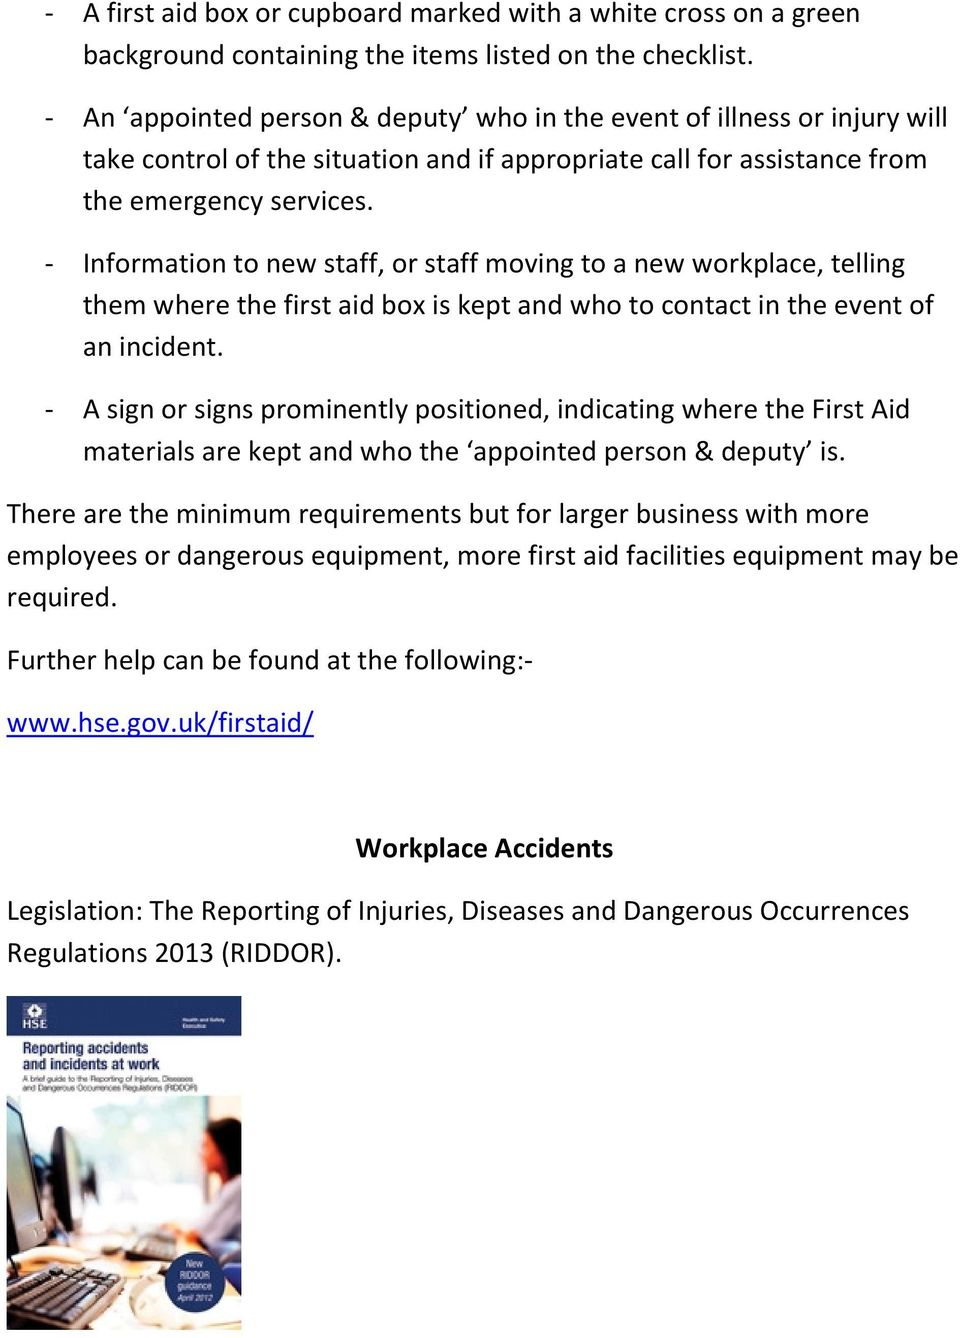 - Information to new staff, or staff moving to a new workplace, telling them where the first aid box is kept and who to contact in the event of an incident.